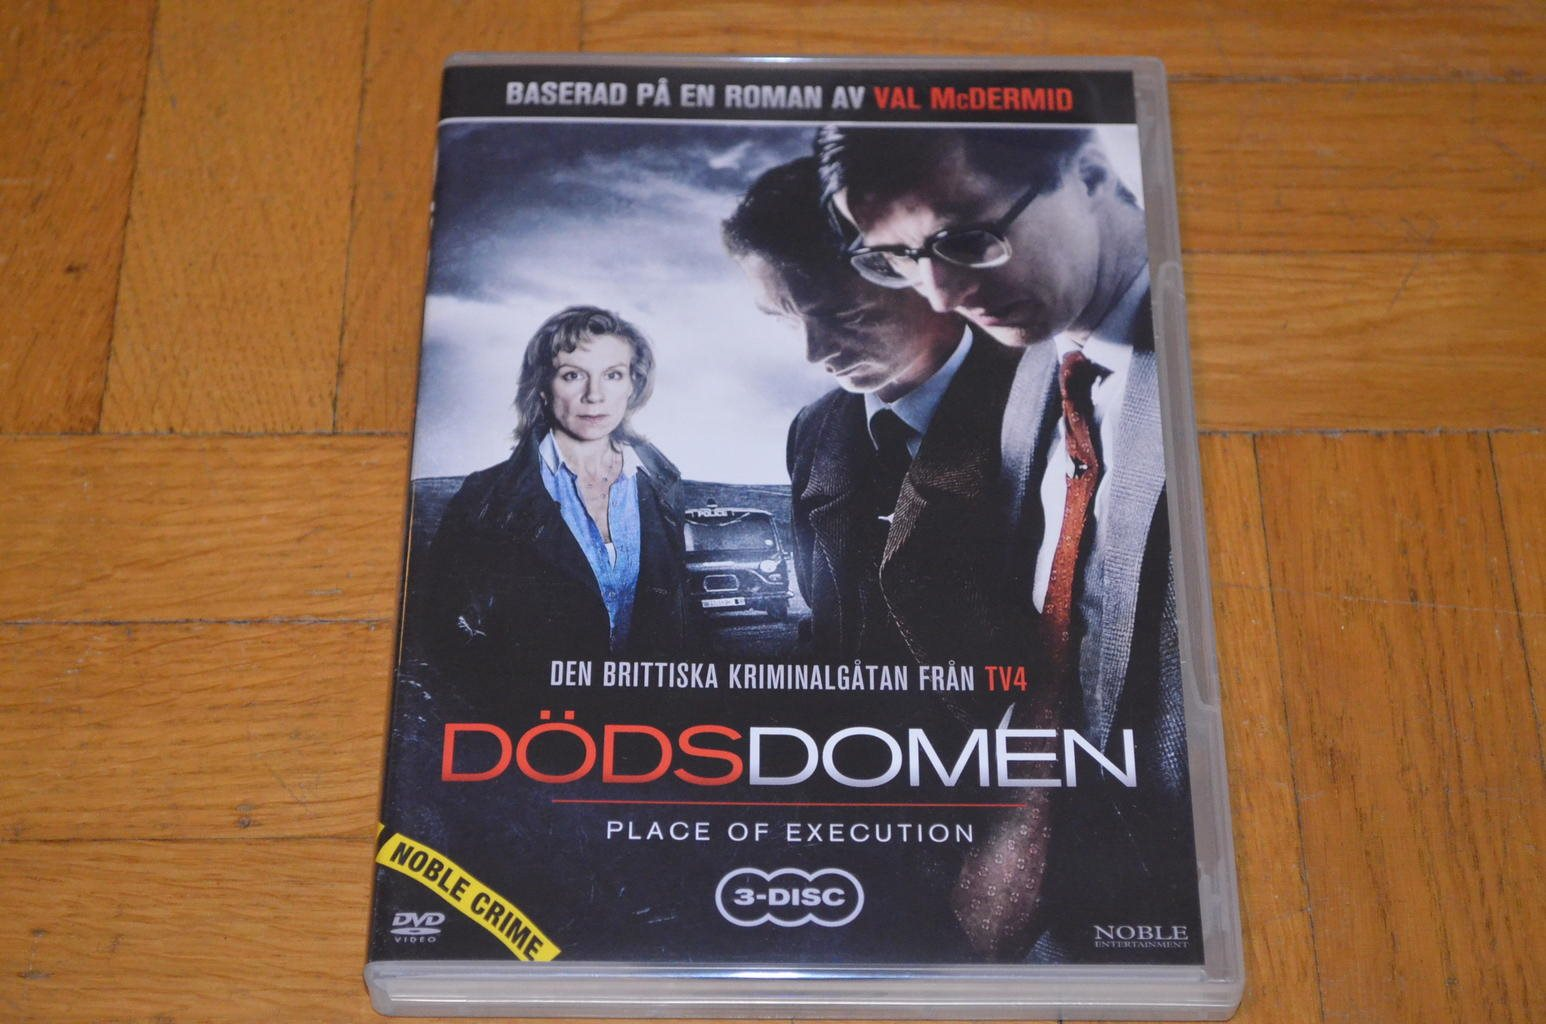 Dödsdomen - Place Of Execution - 3-Disc DVD